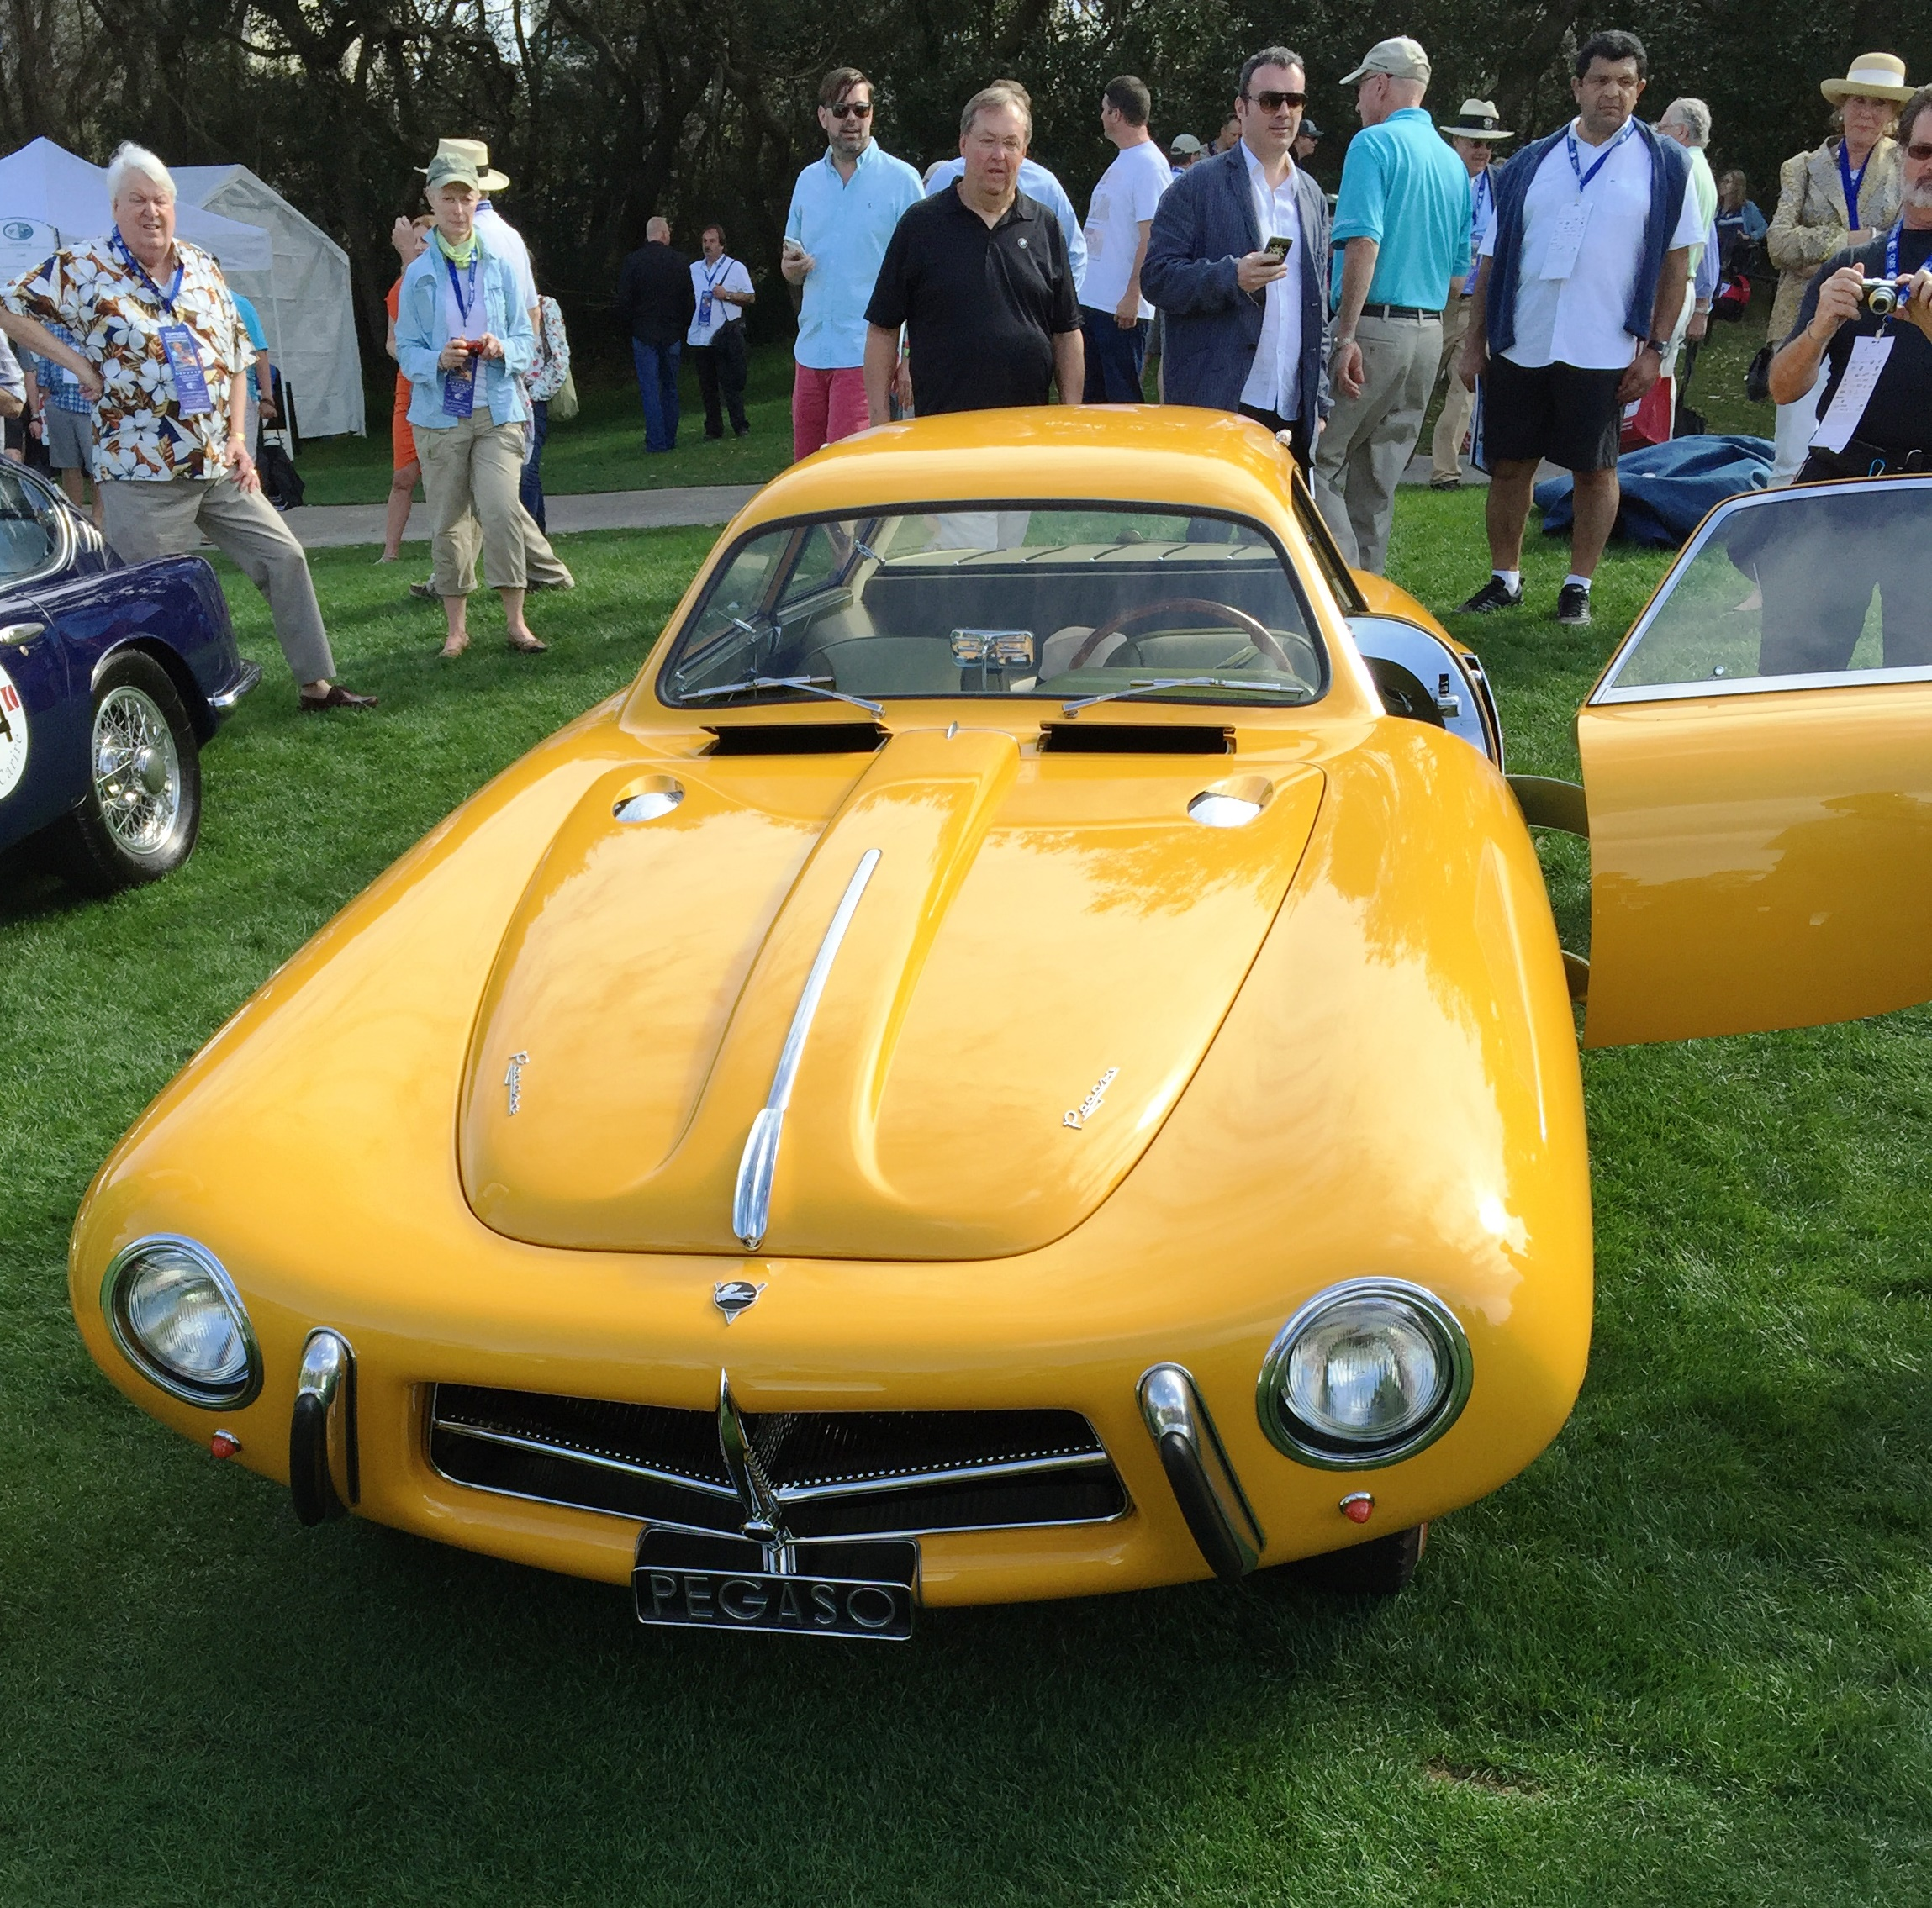 yellow pegaso best-in-show - amelia island concours